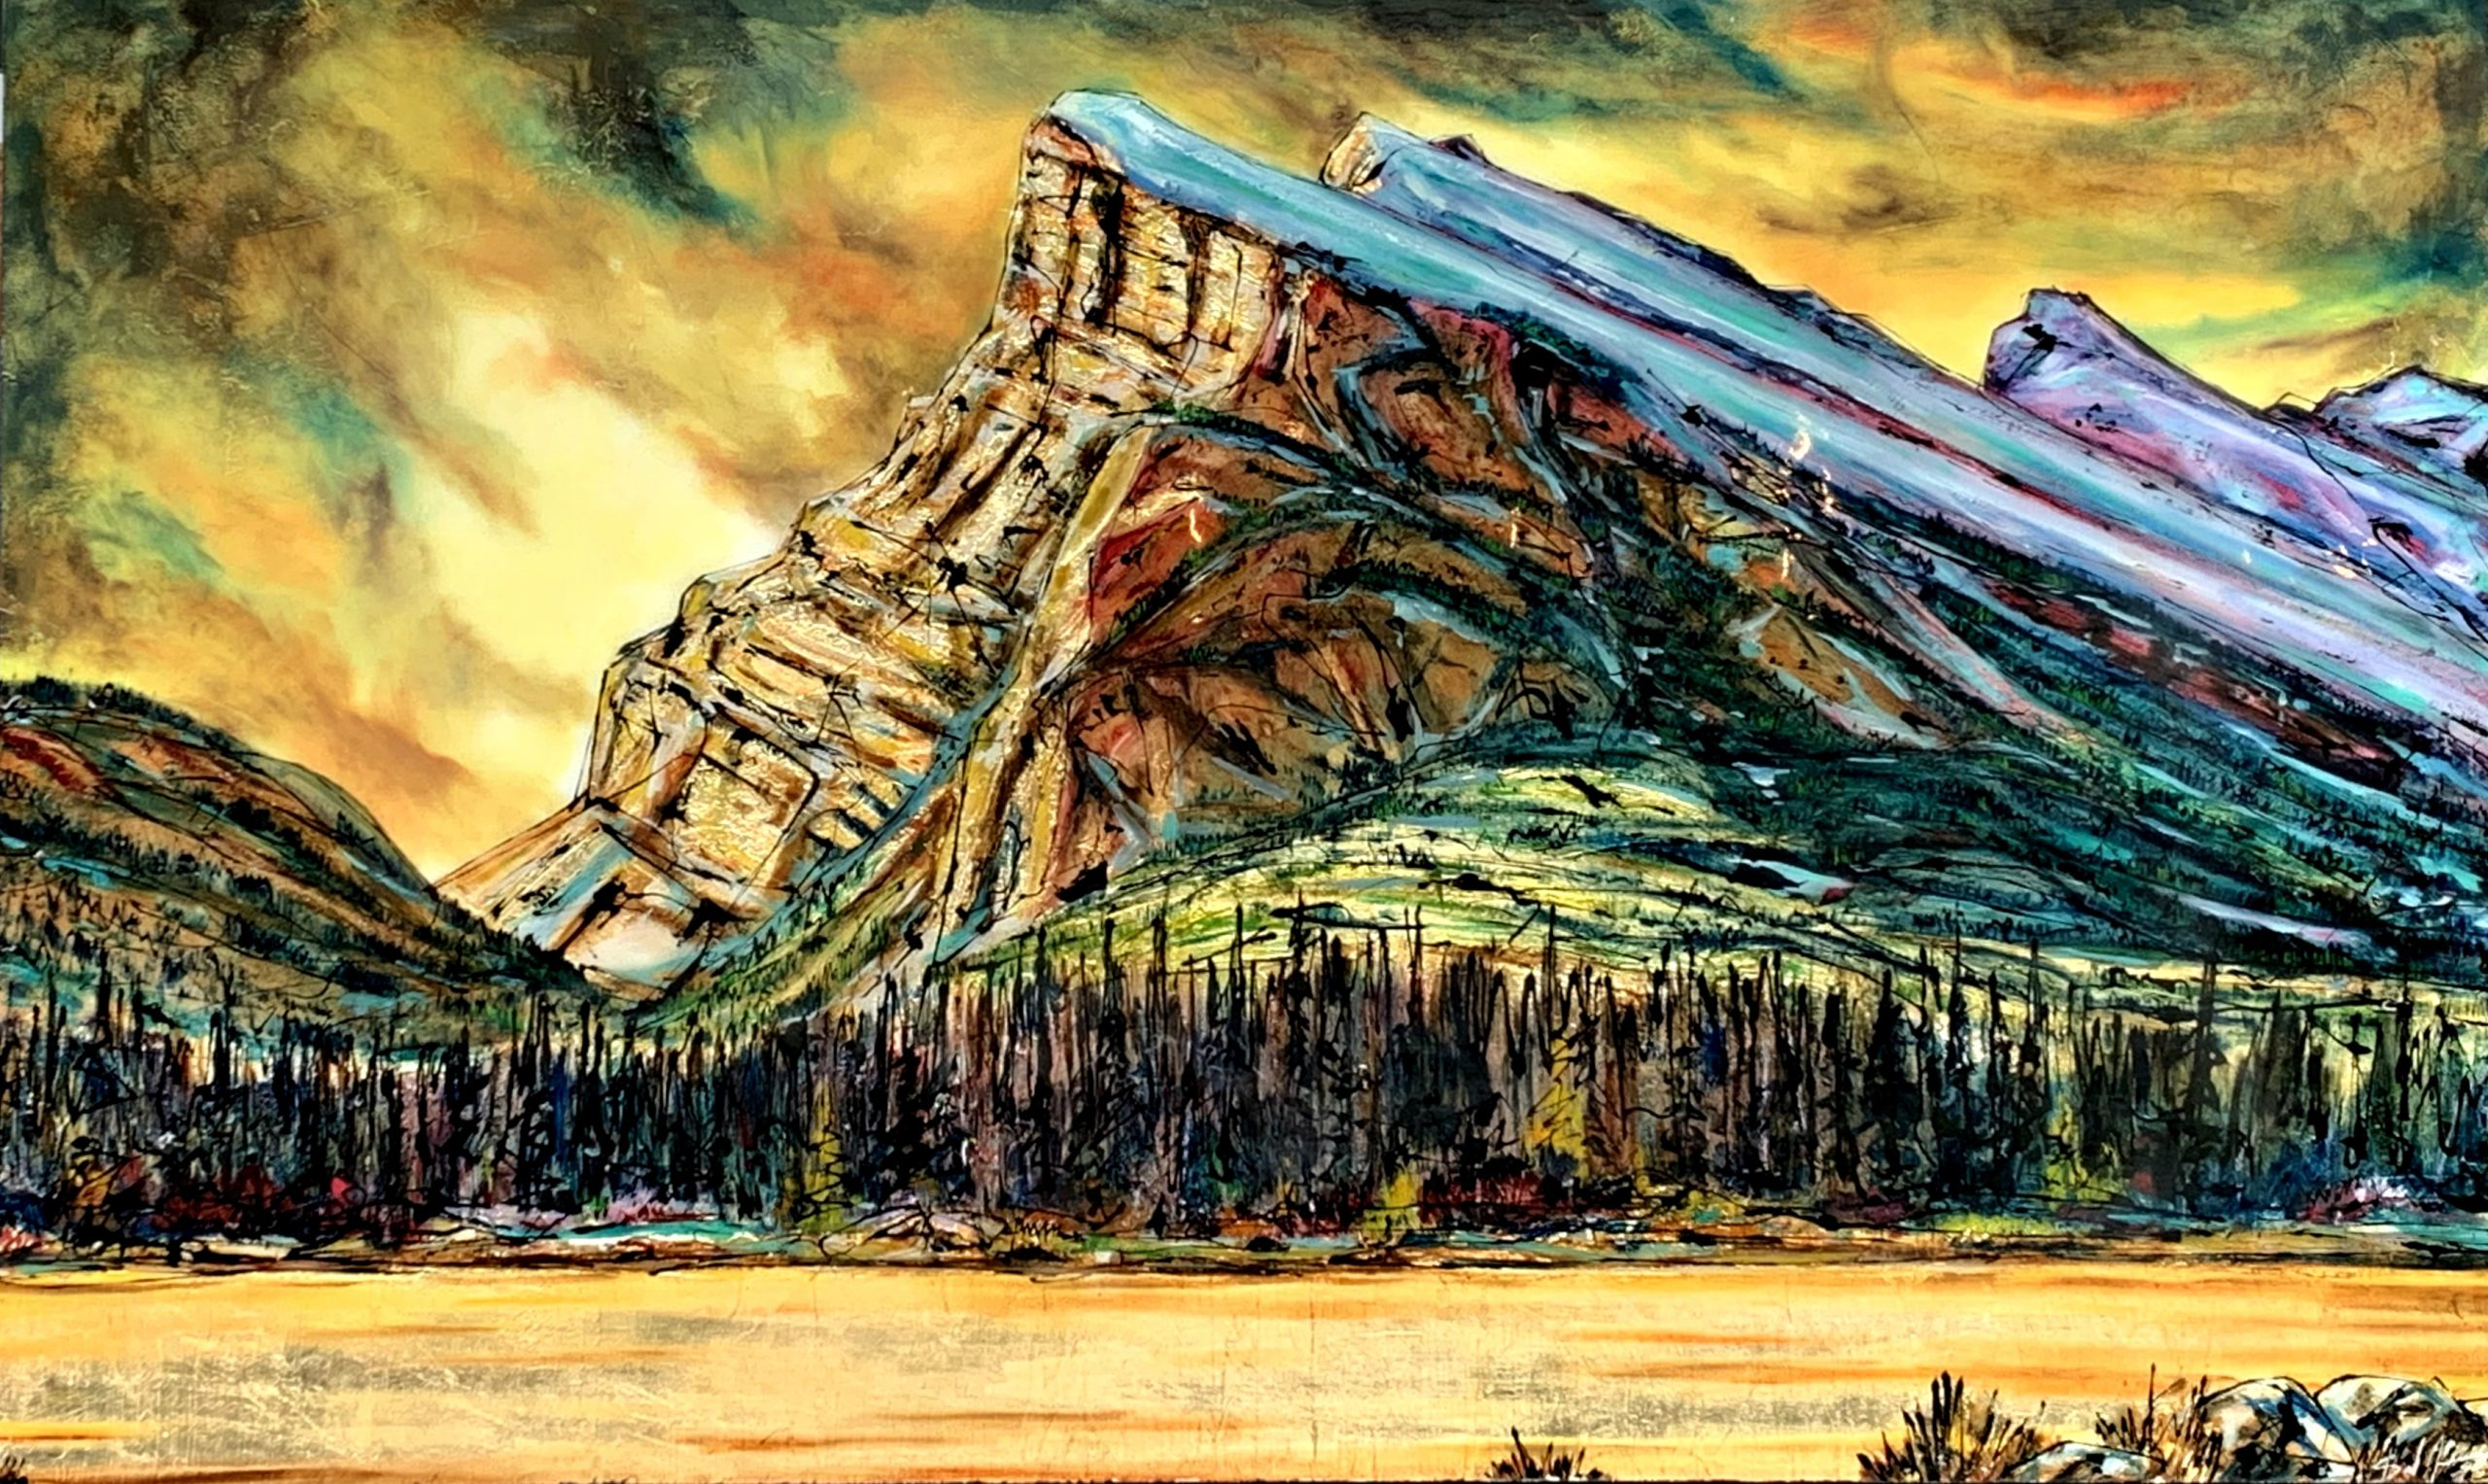 A Thin, Thin Line, mixed media landscape painting by David Zimmerman | Effusion Art Gallery + Glass Studio, Invermere BC